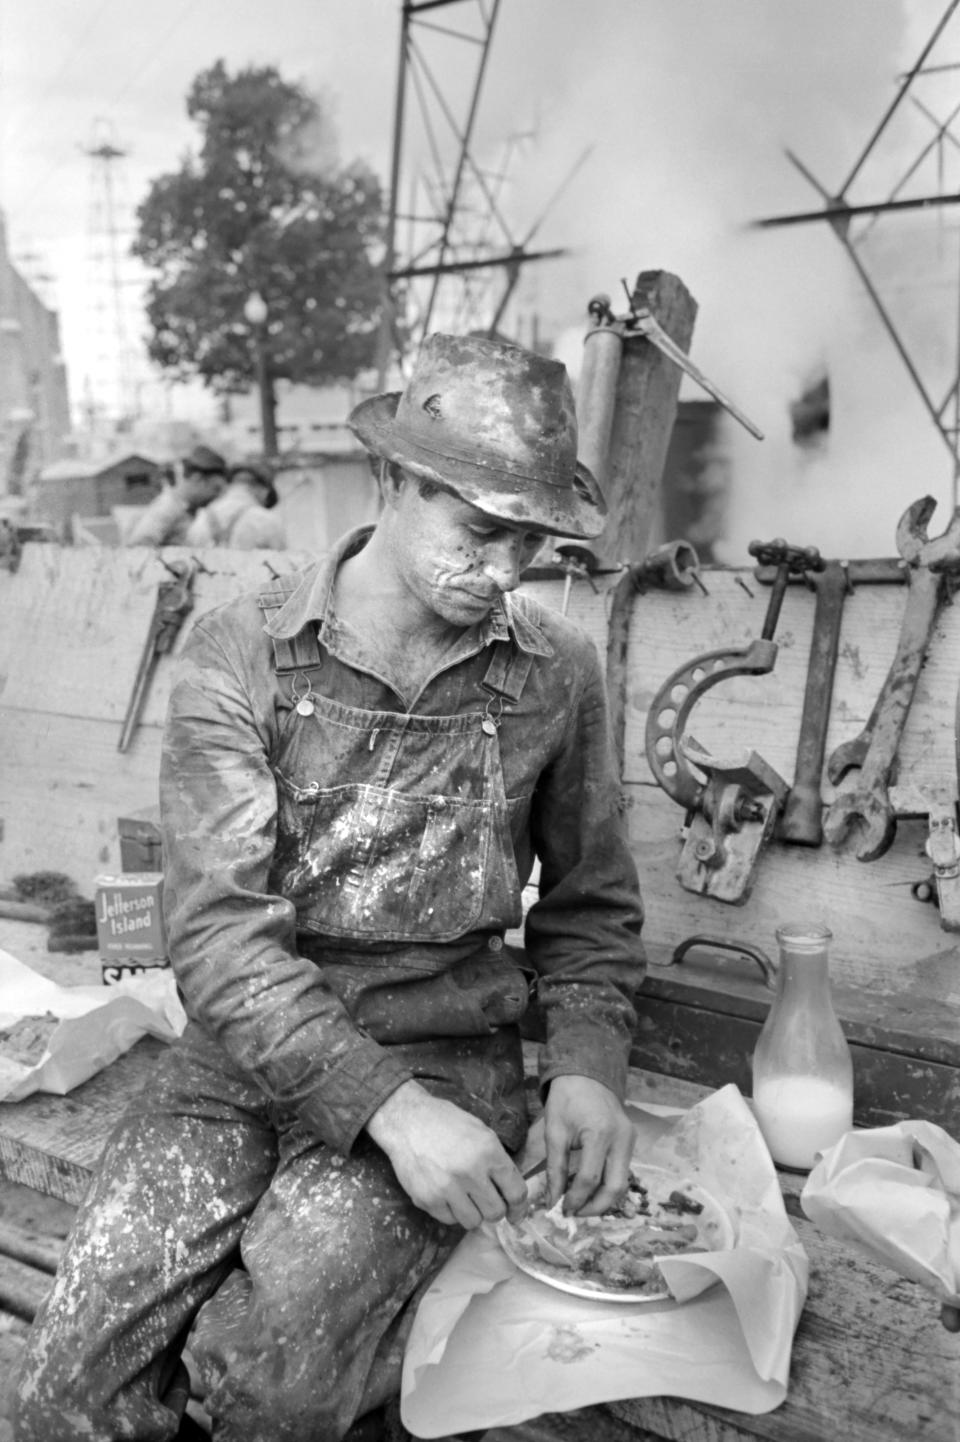 Oil Field Worker eating Lunch, Kilgore, Texas, USA, Russell Lee, Farm Security Administration, April 1939. (Photo by: Universal History Archive/Universal Images Group via Getty Images)